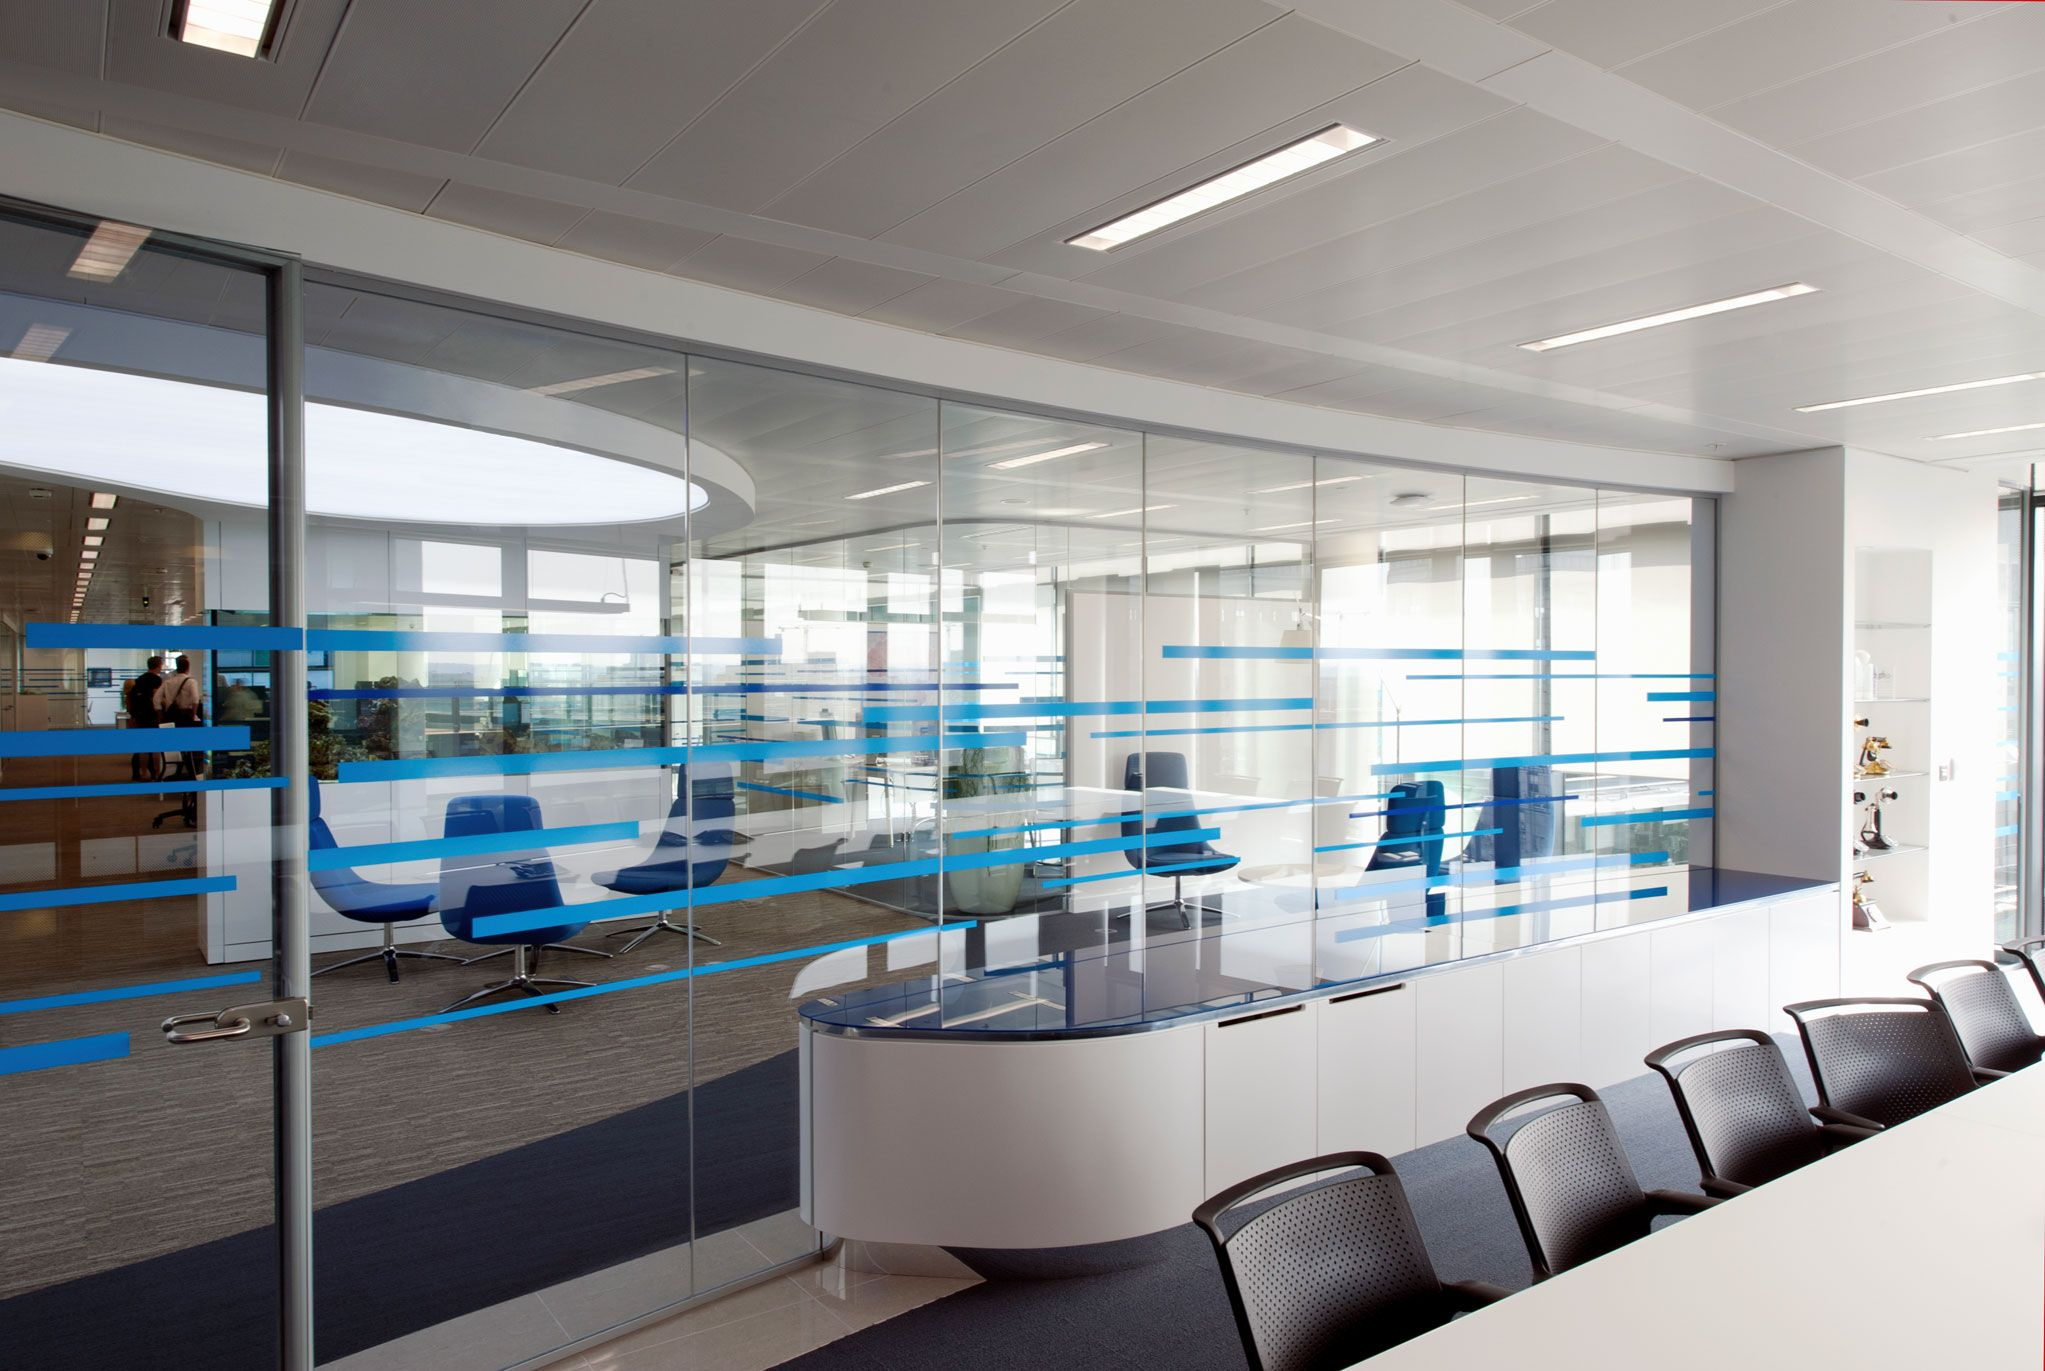 new office designs. Case Study Detailing The Office Design And Fit-out Undertaken By Maris Interiors For Liquid Telecom At New Street Square, London. Offices Designs